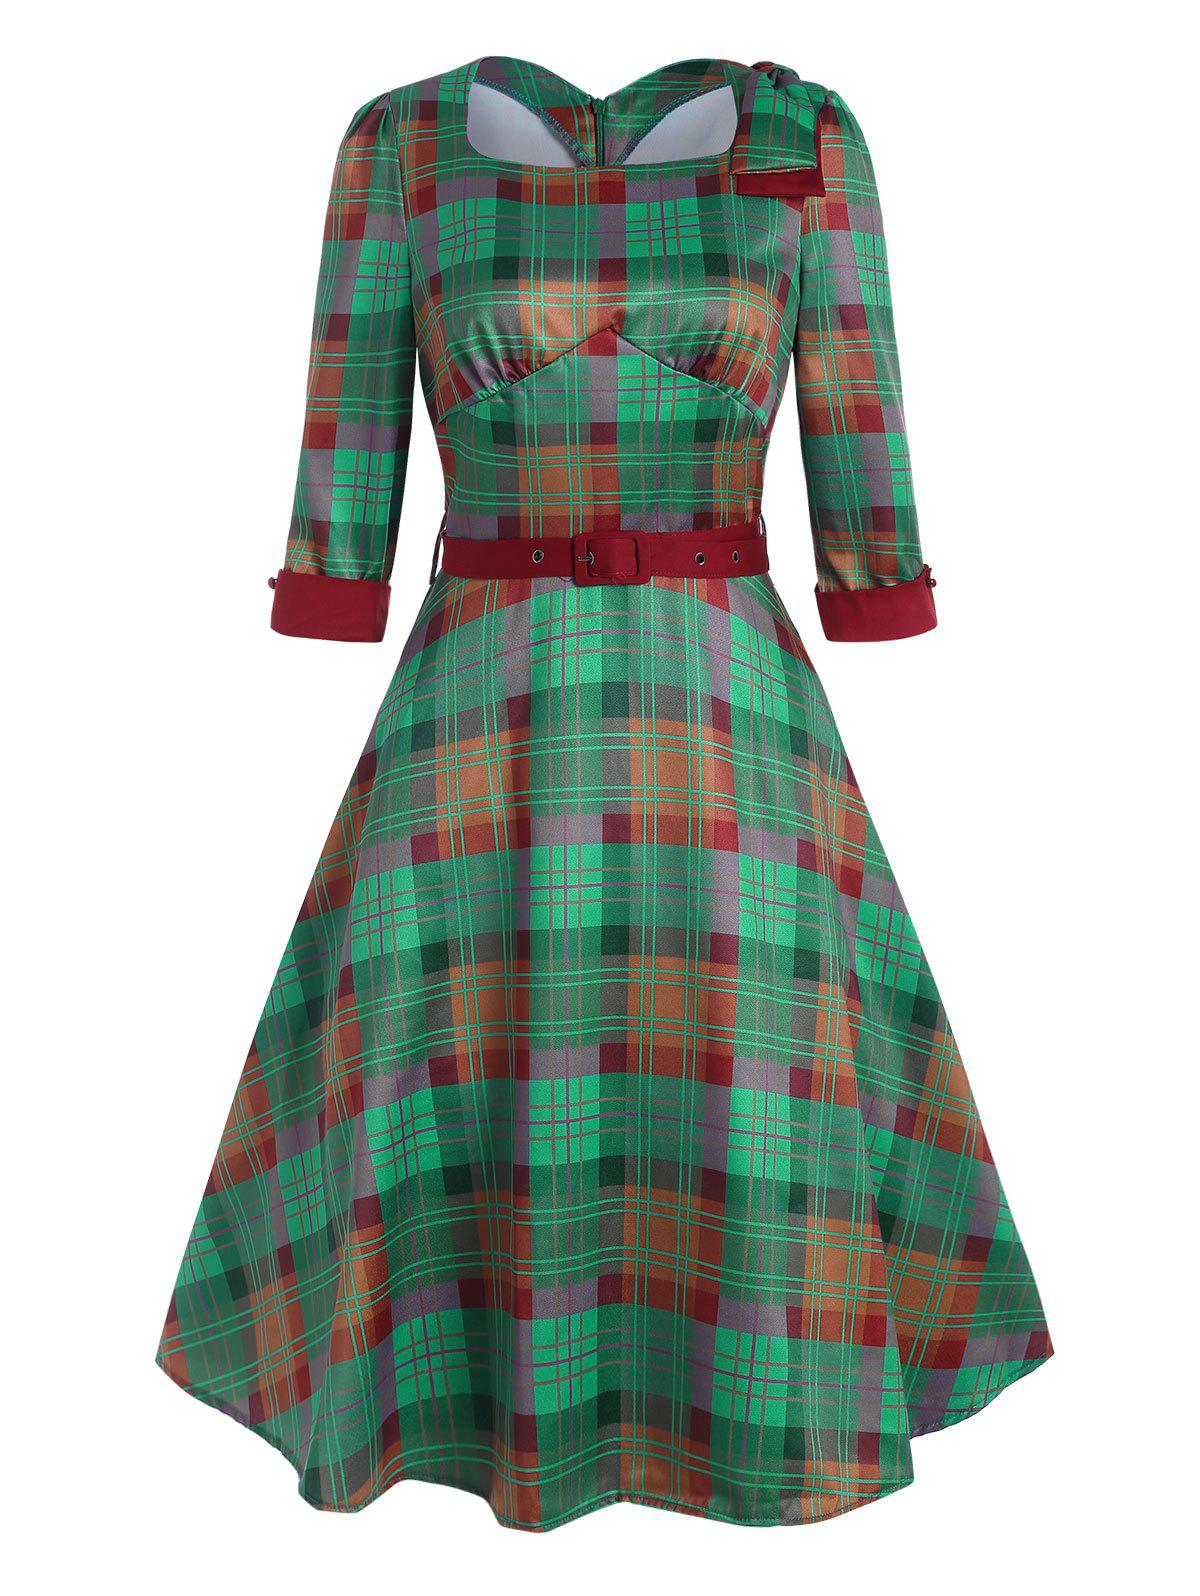 Plaid Bowknot Square Neck Belted Dress - DEEP GREEN L